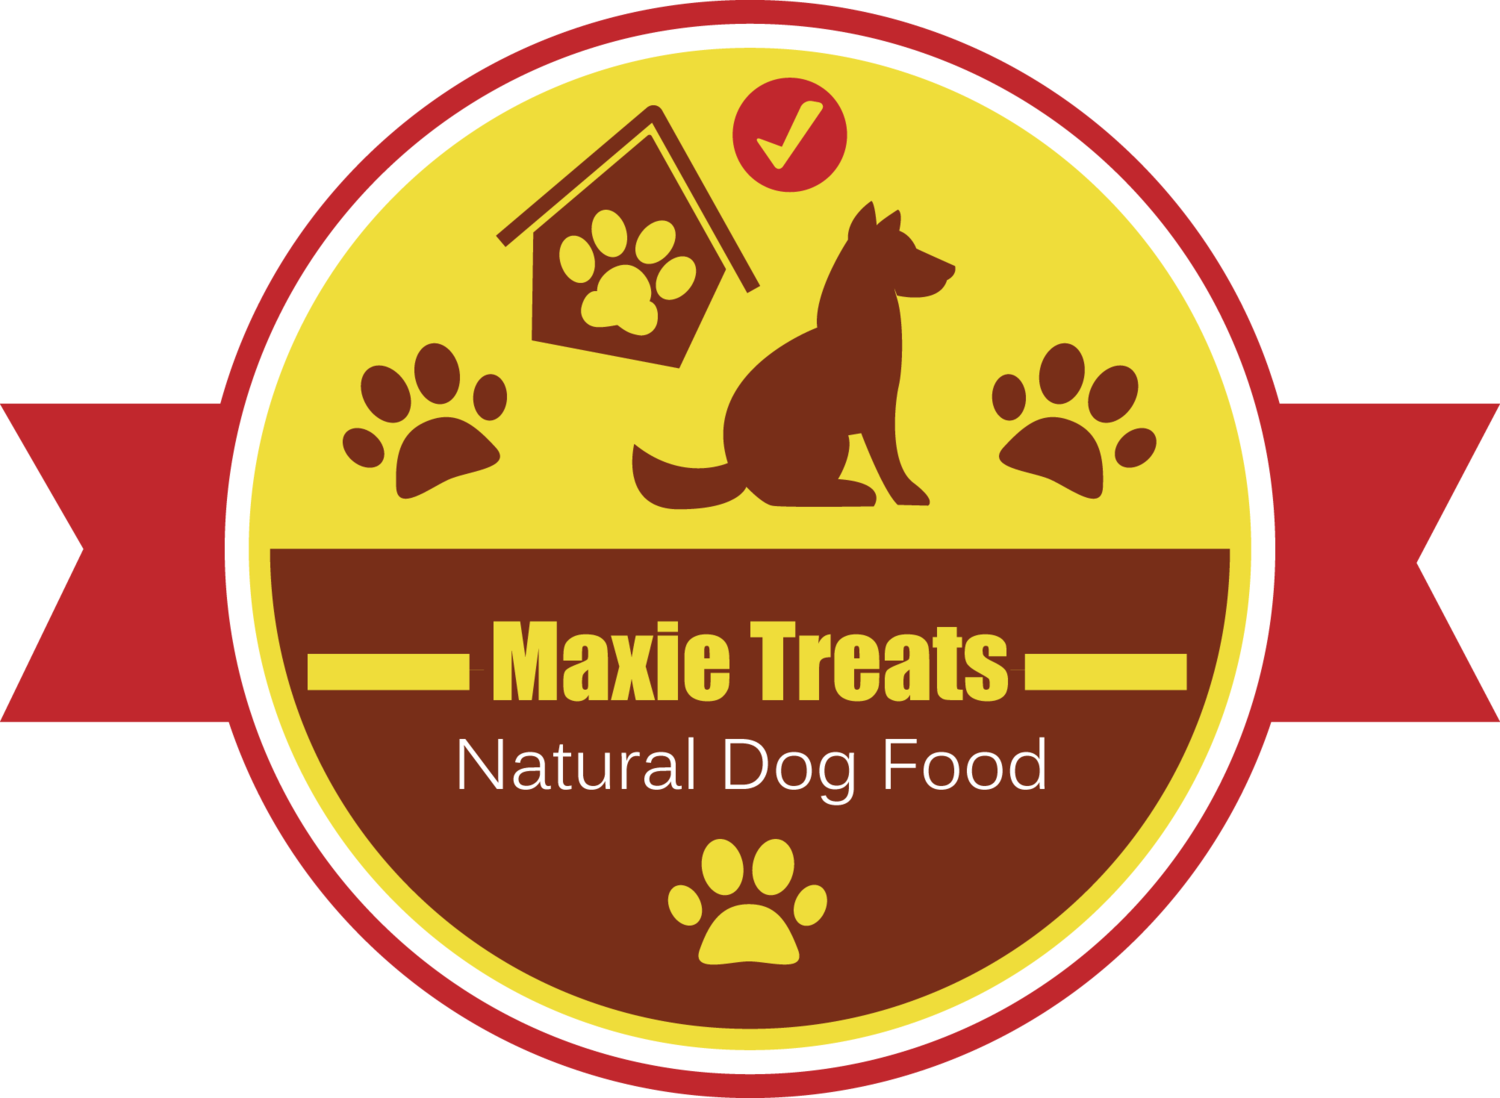 Maxie Treats